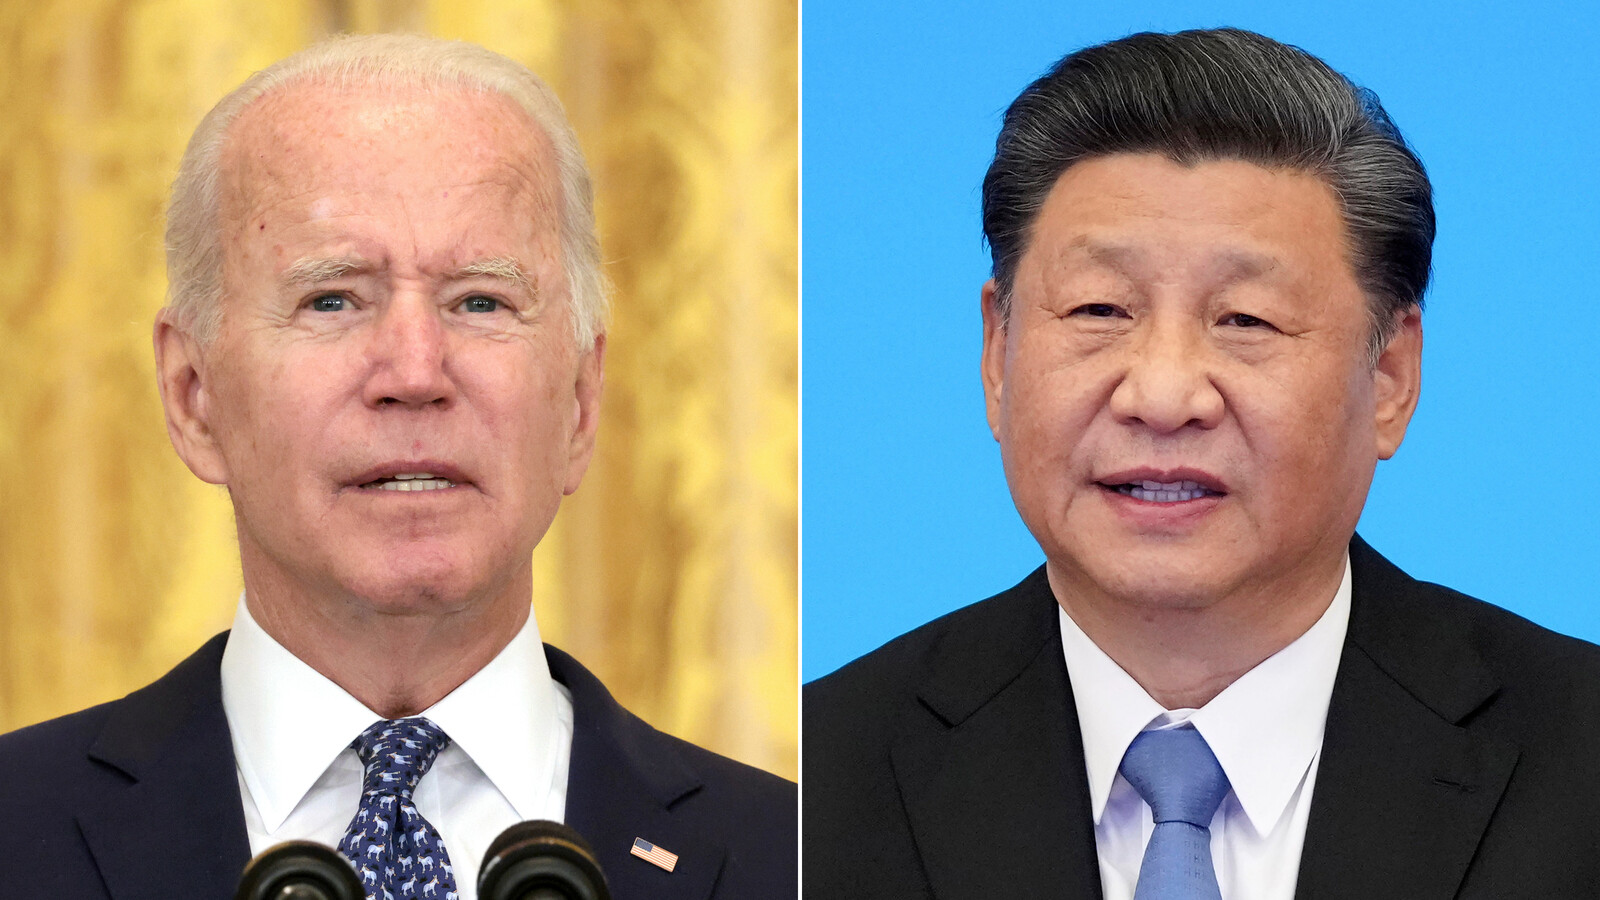 Biden speaks with Chinese President Xi Jinping amid tensions in recent months